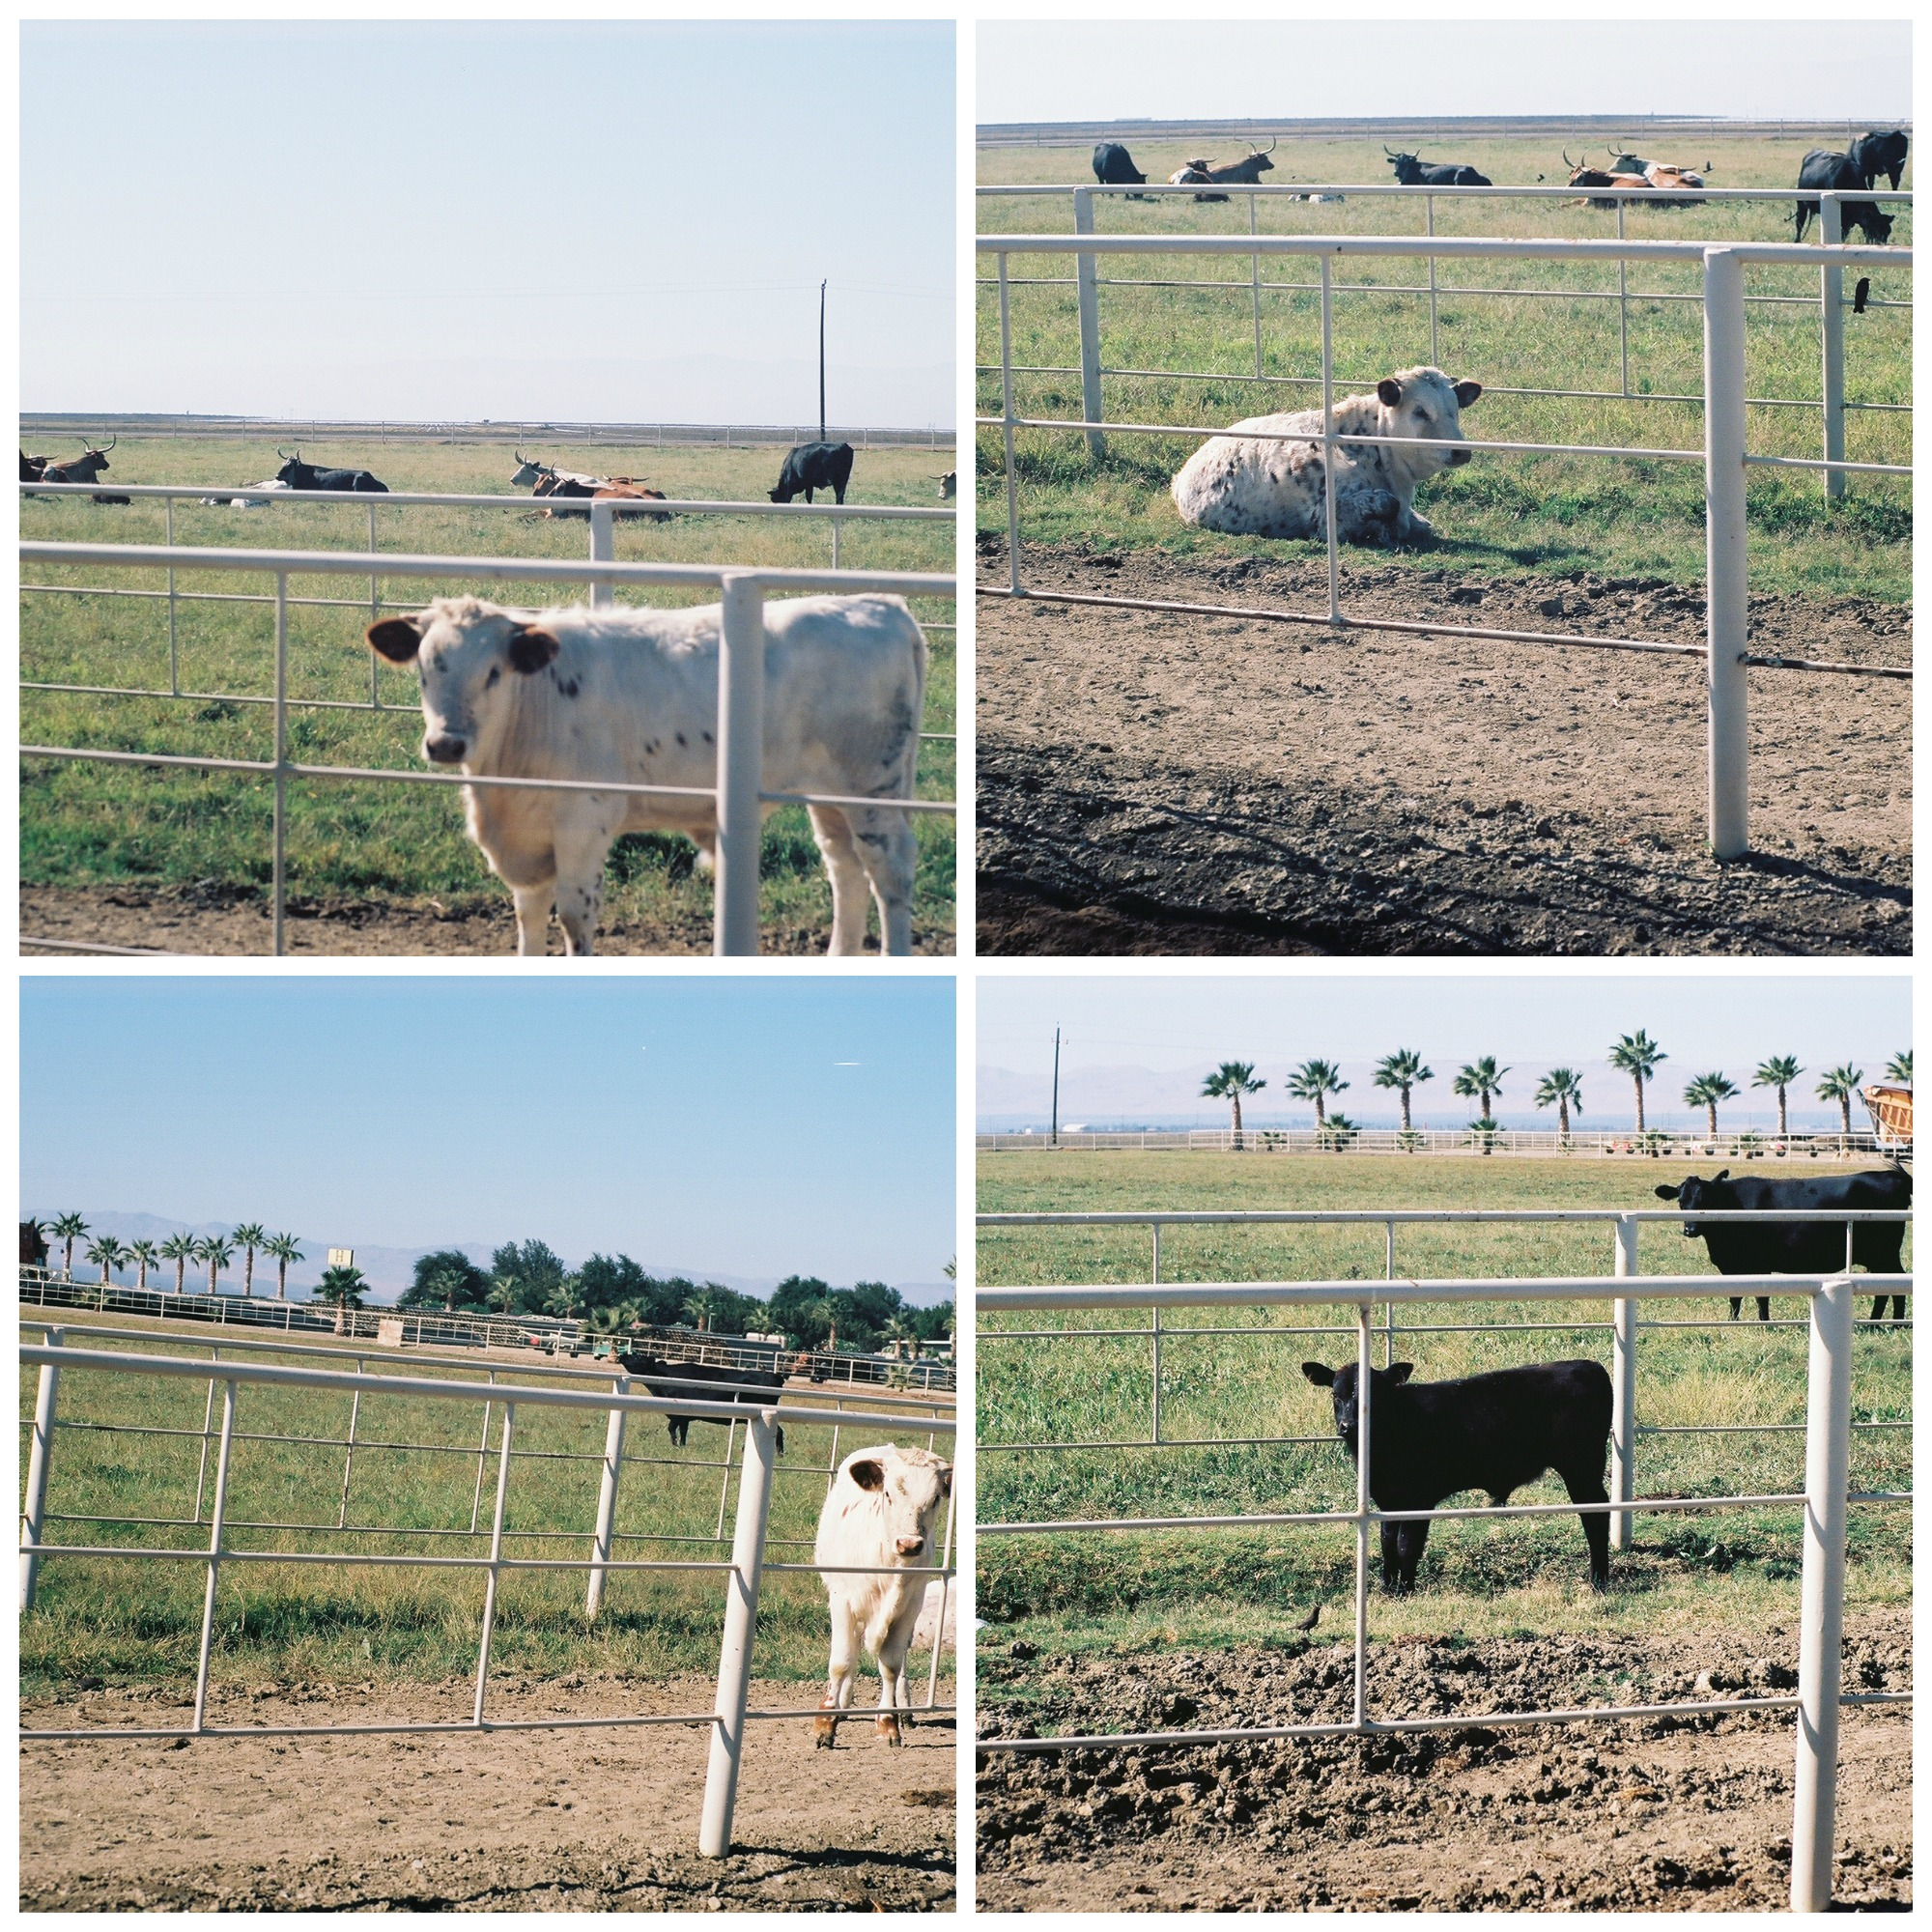 Long Horn and Angus cows in Firebaugh, CA